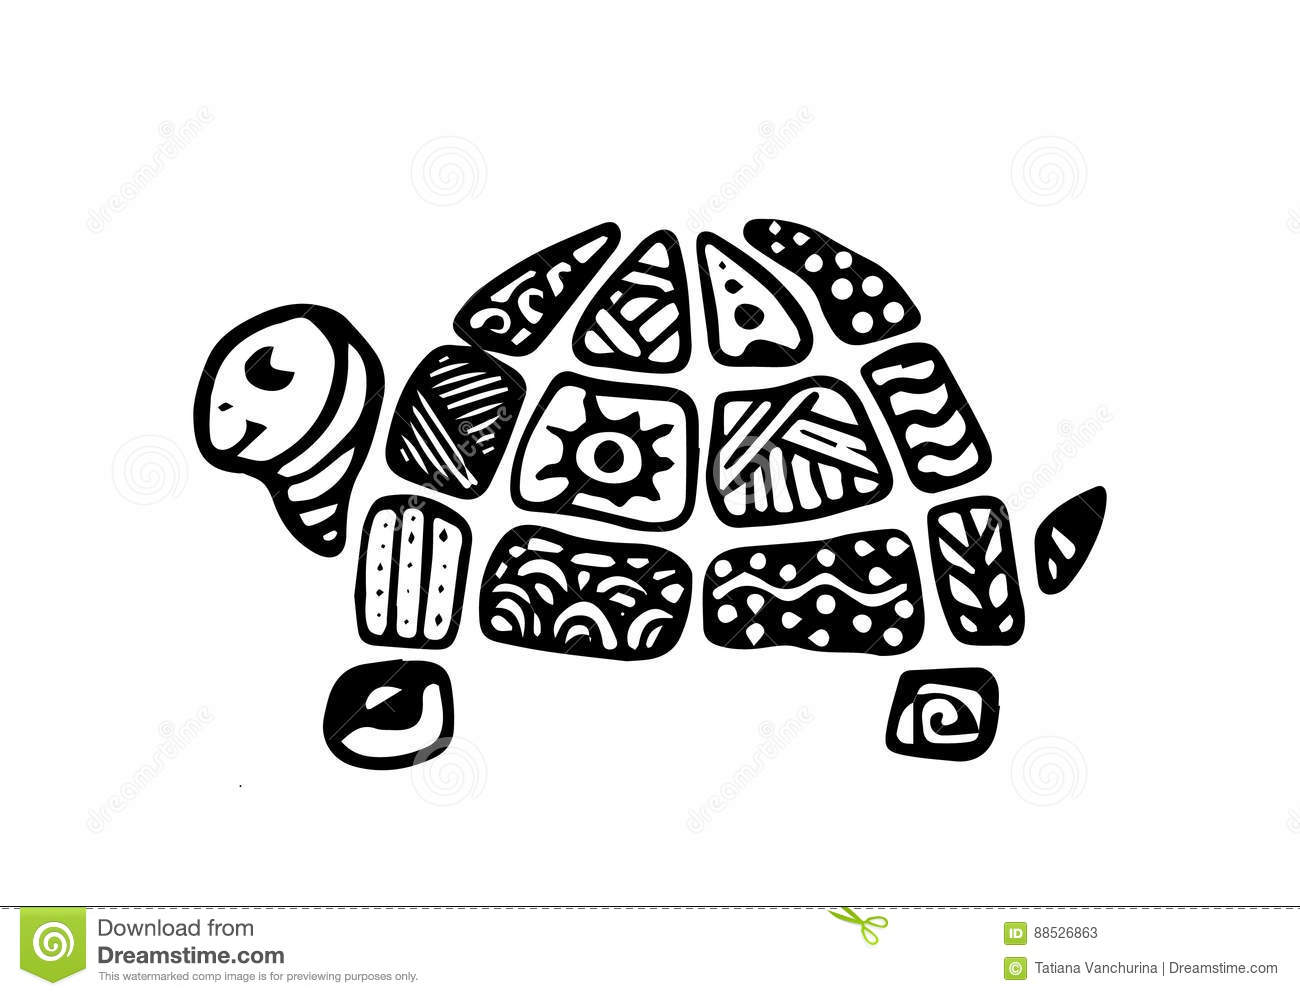 Hand Drawn Doodle Of A Turtle Pattern On The Shell Zentangle Style Kids Style Stock Illustration Illustration Of Meditation Doodledecoration 88526863